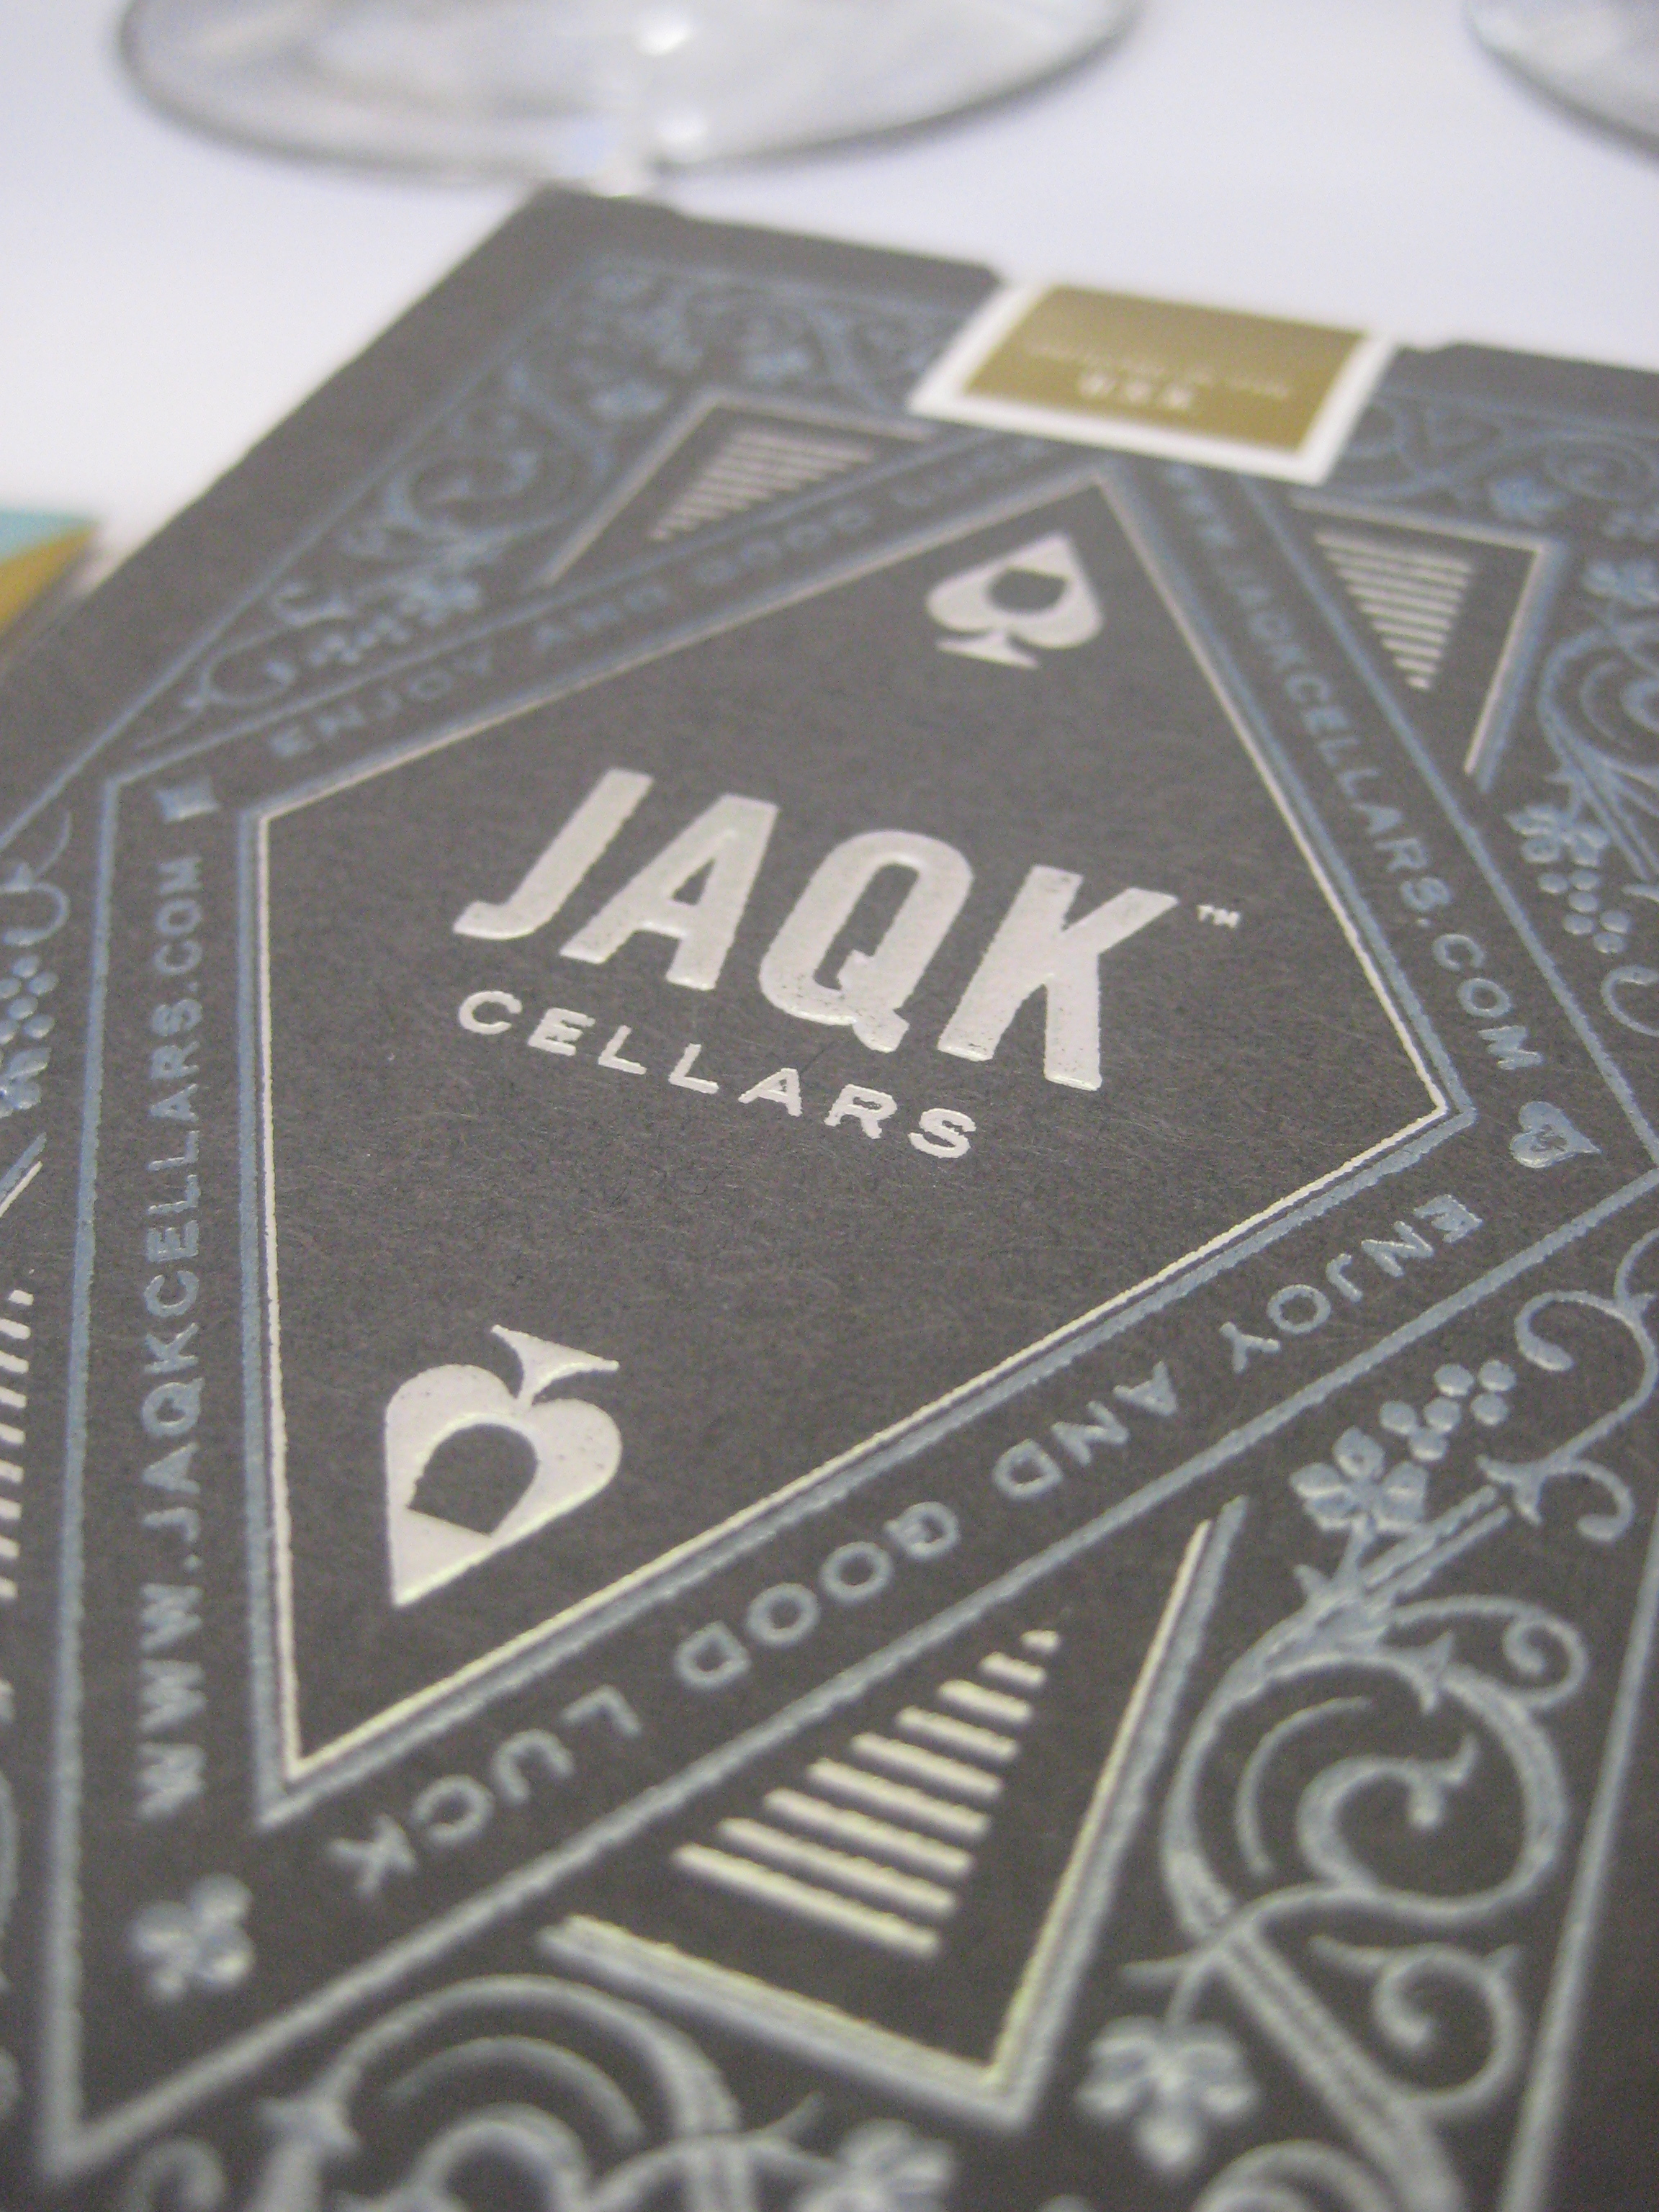 I was given a decorative pack of JAQK playing cards as a party favor.